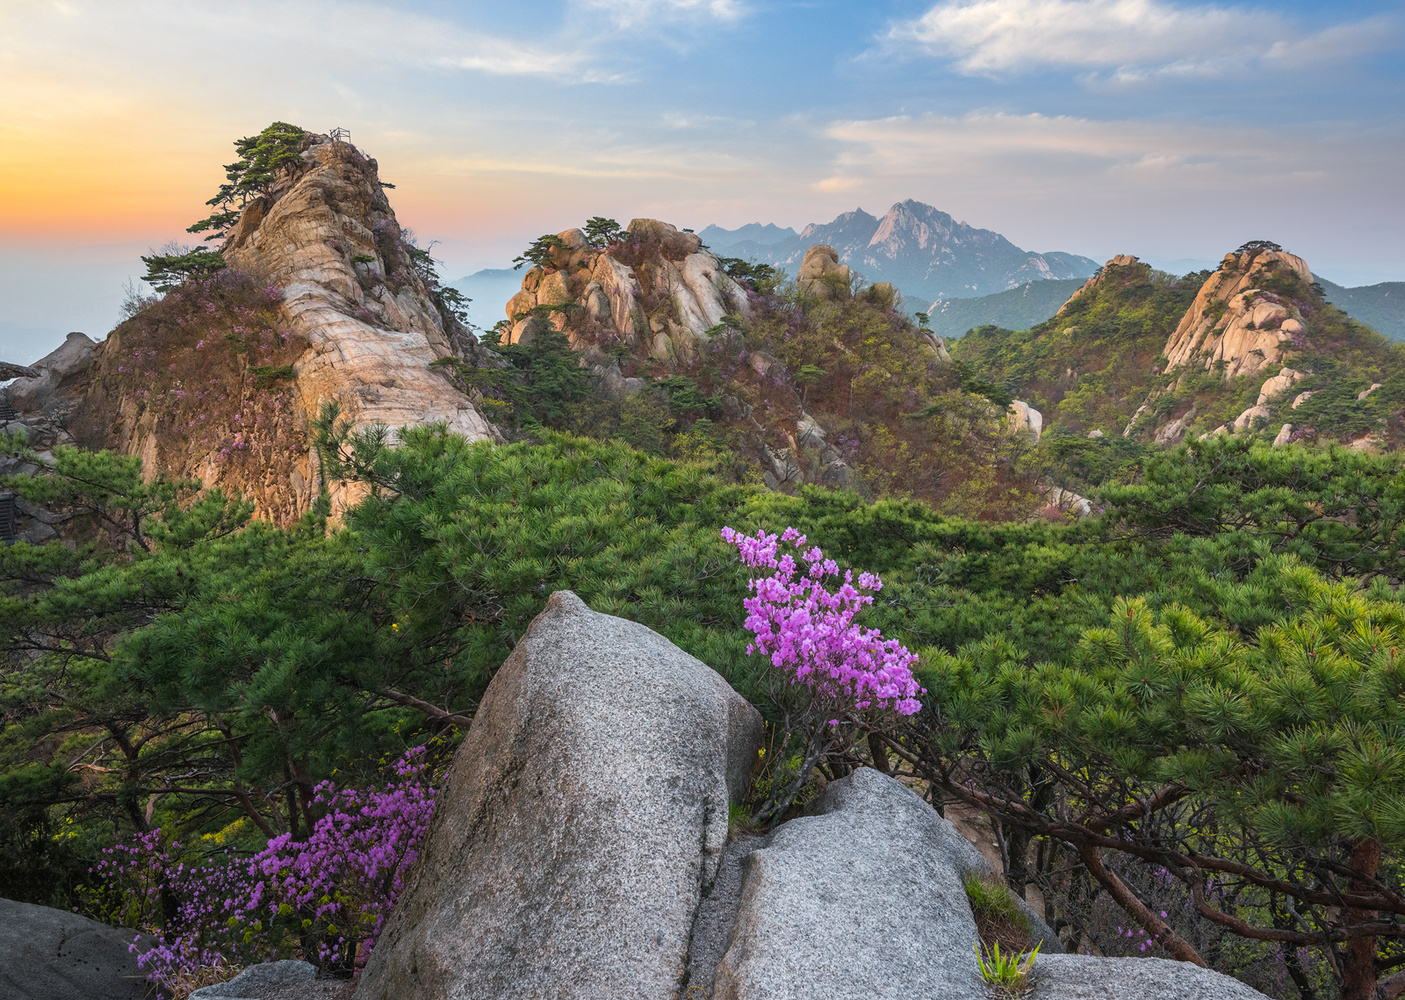 Flowers blooming on the rocks by jaeyoun Ryu